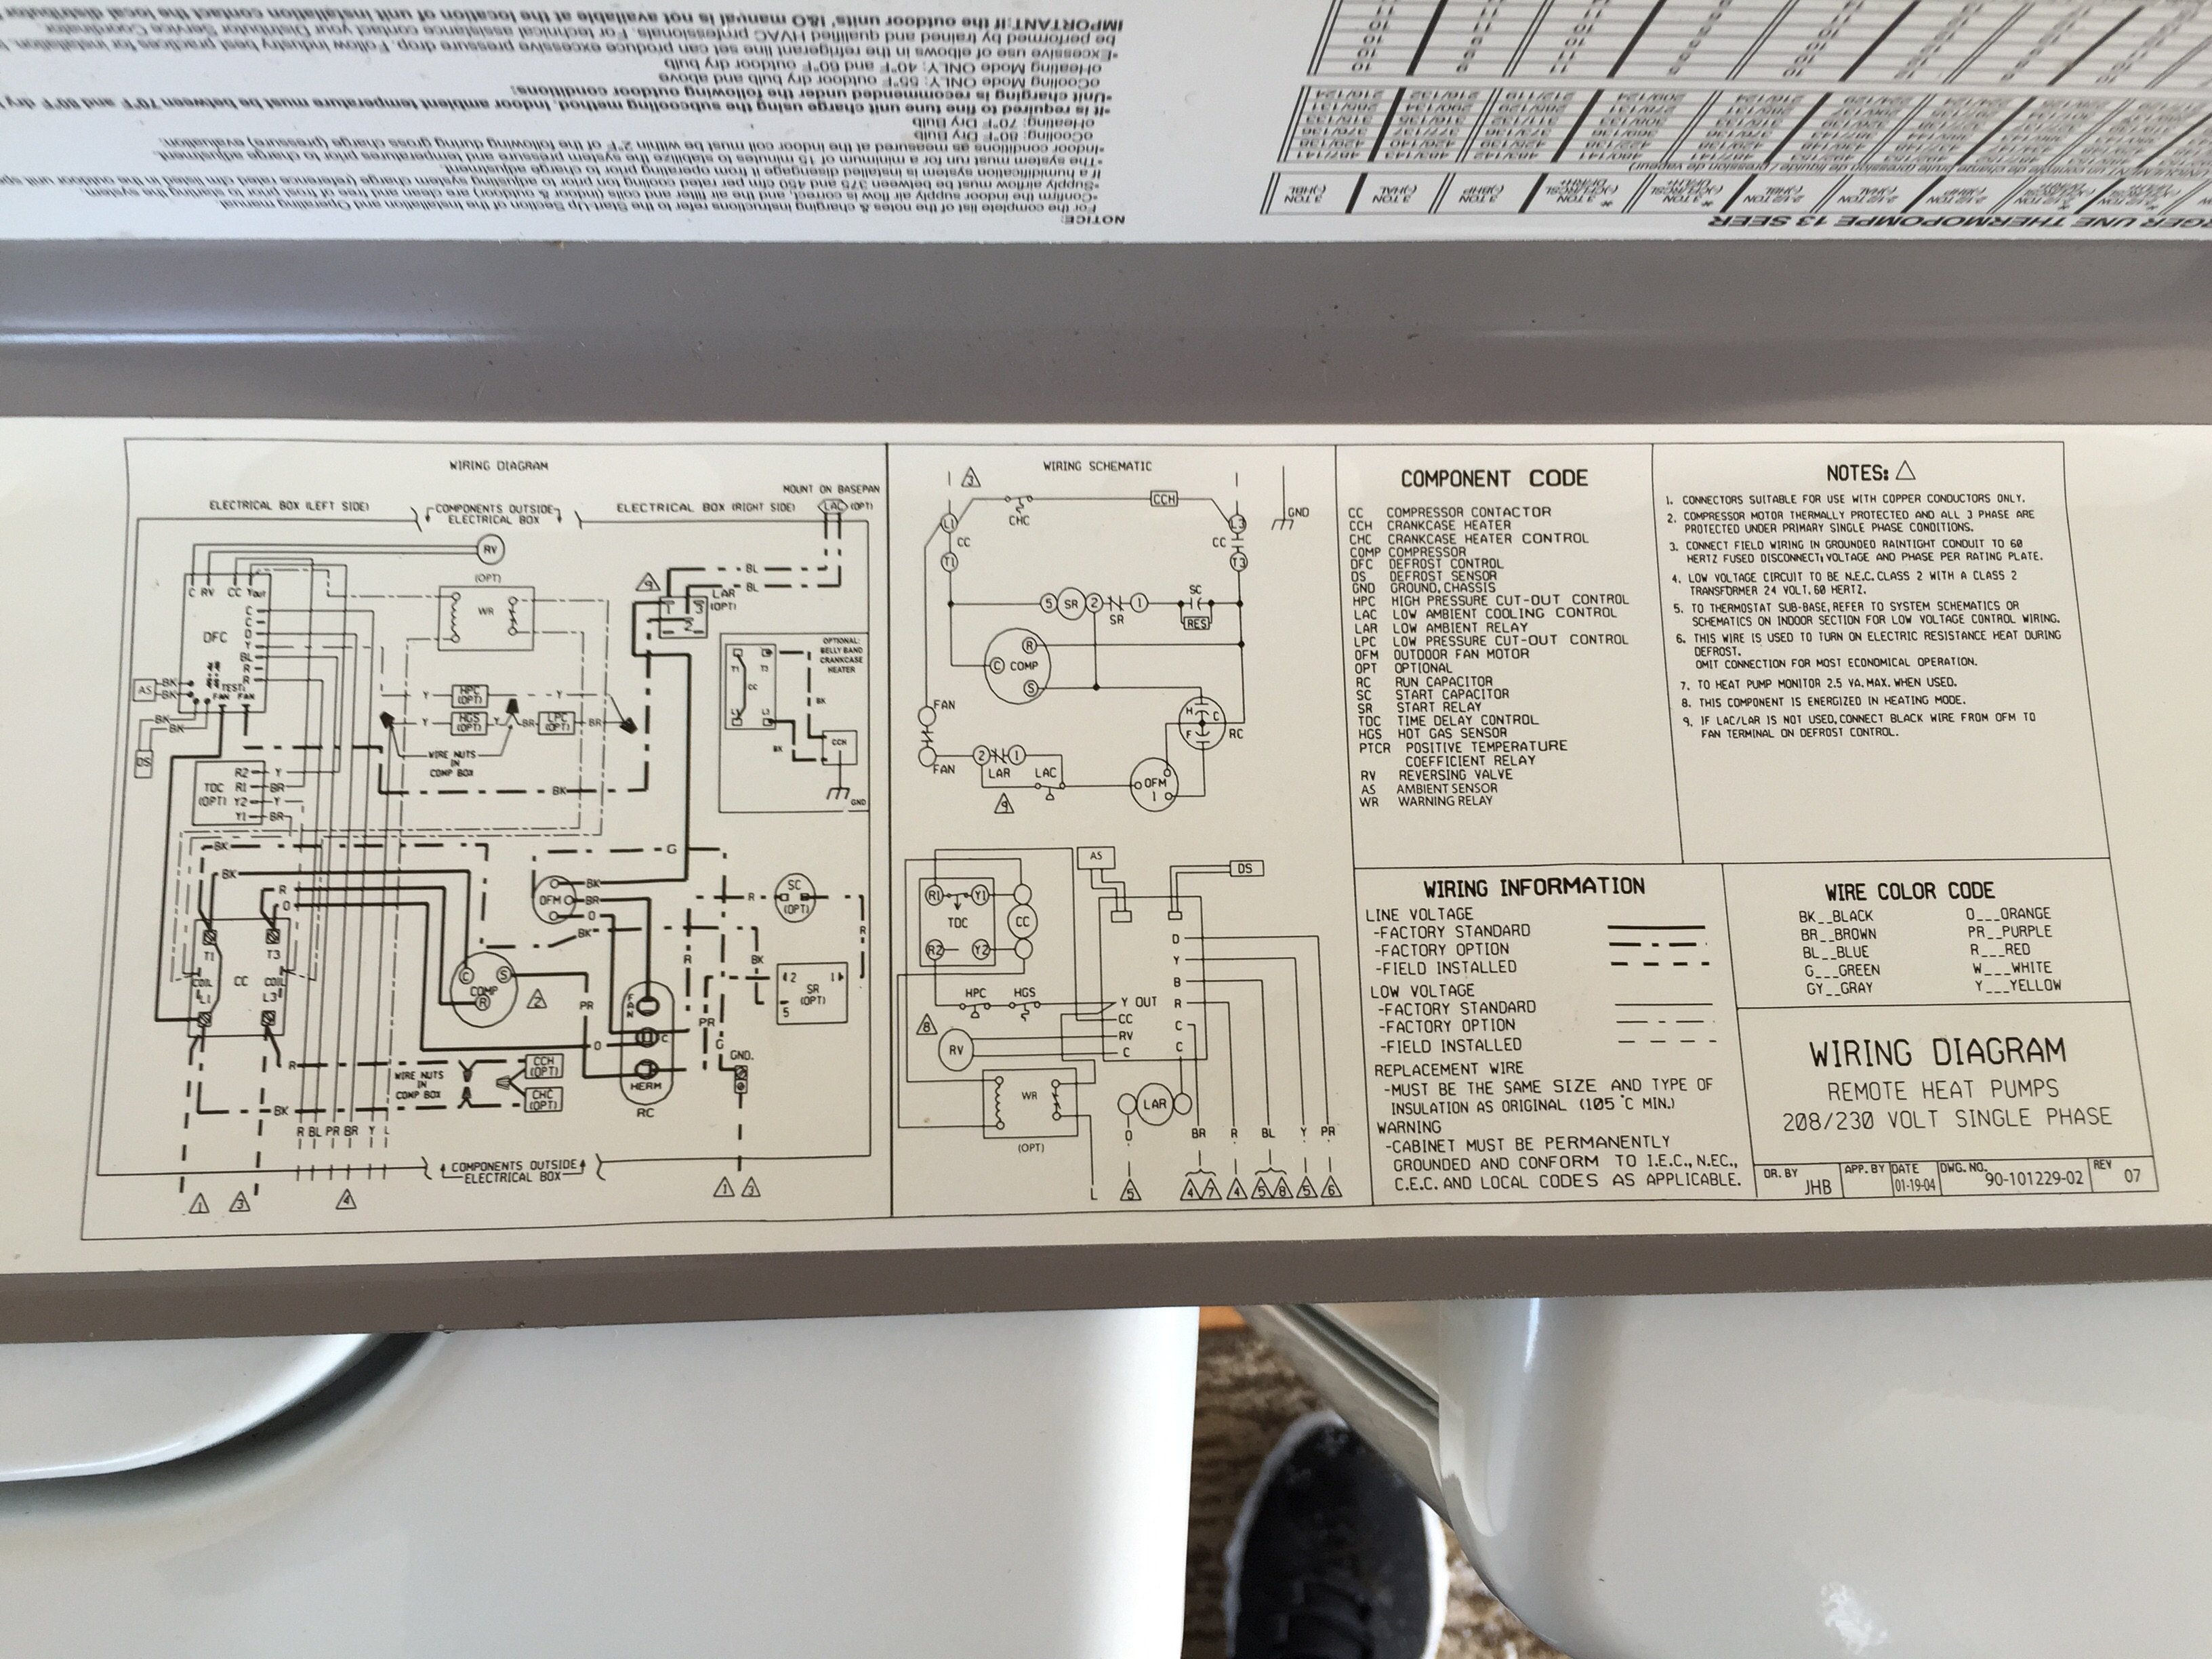 Wiring Diagram For Thermal Zone Heat Pump : Thermal zone wiring diagram grandaire